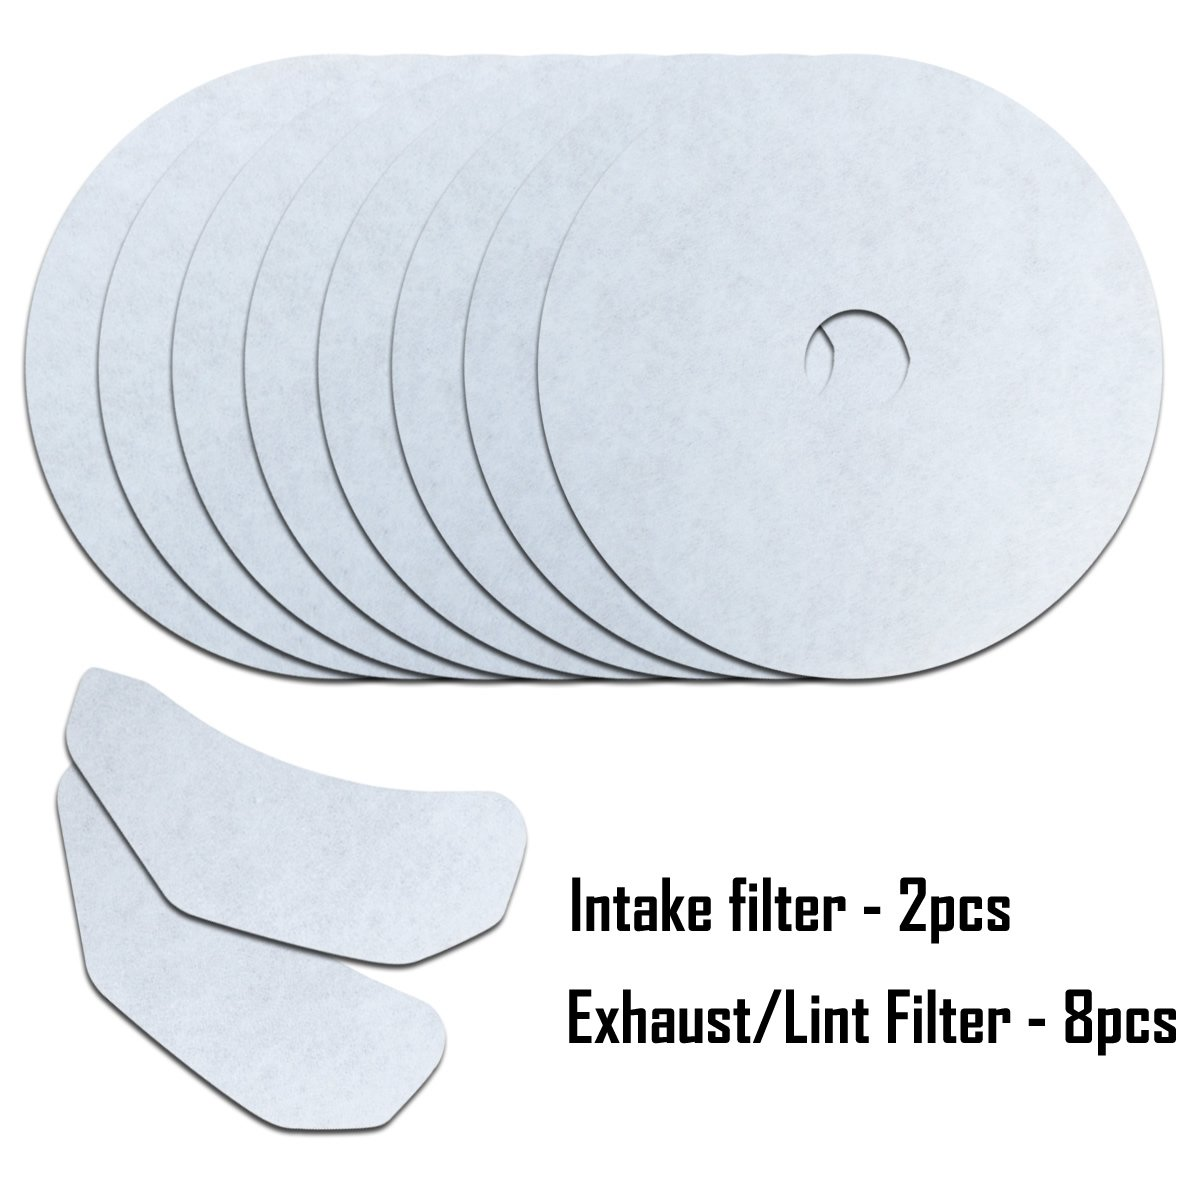 CTT 10Pack Universal Cloth Dryer Exhaust Filter Set Replacement for Panda/Magic Chef/Sonya/Avant by CTT